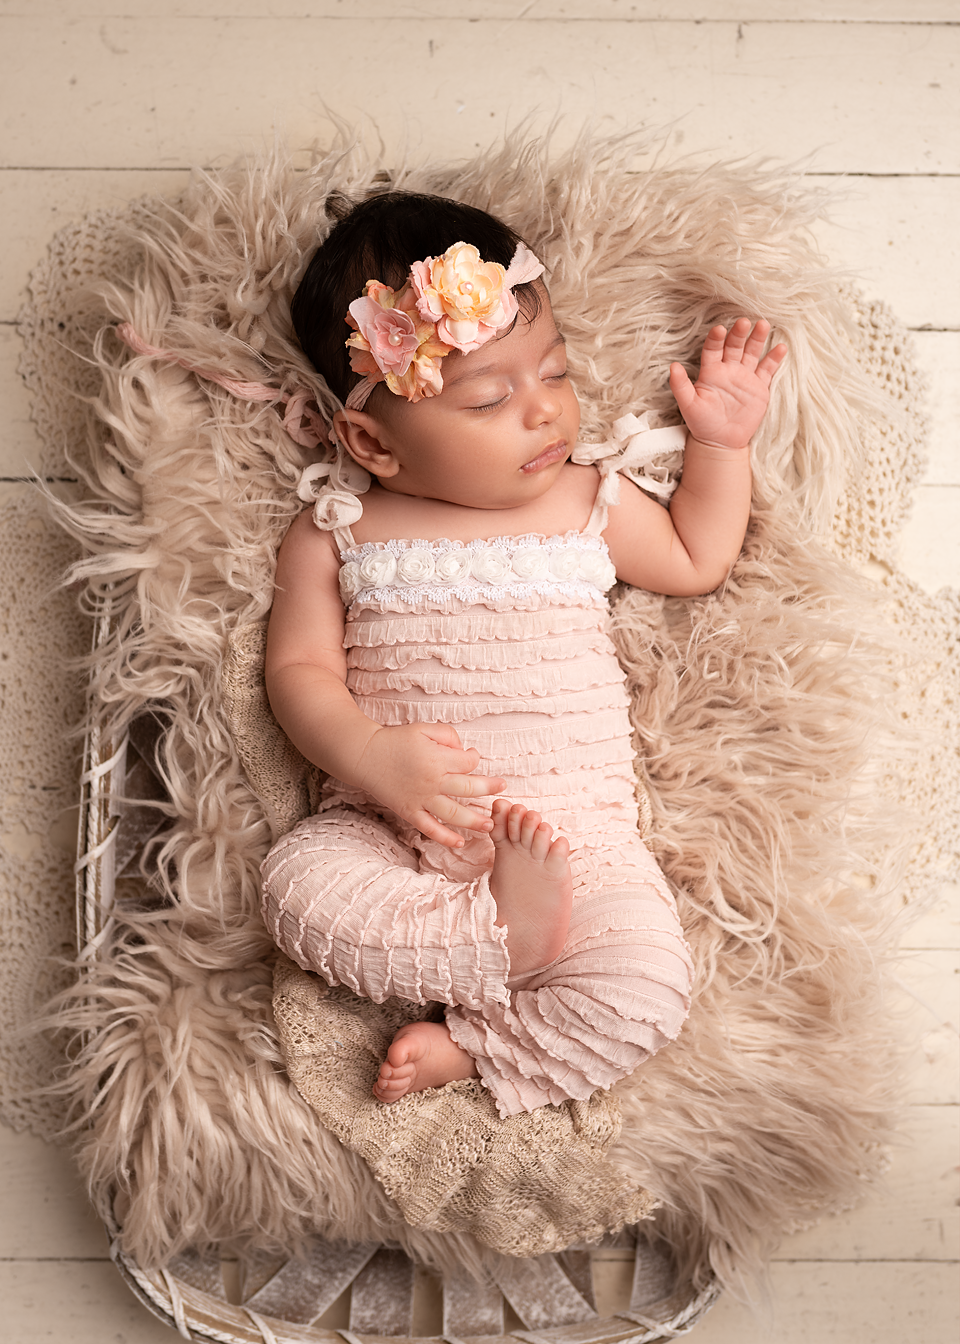 newborn photographer Pinehurst studio picture maternity gown Southern Pines aberdeen portrait sibling portrait with baby